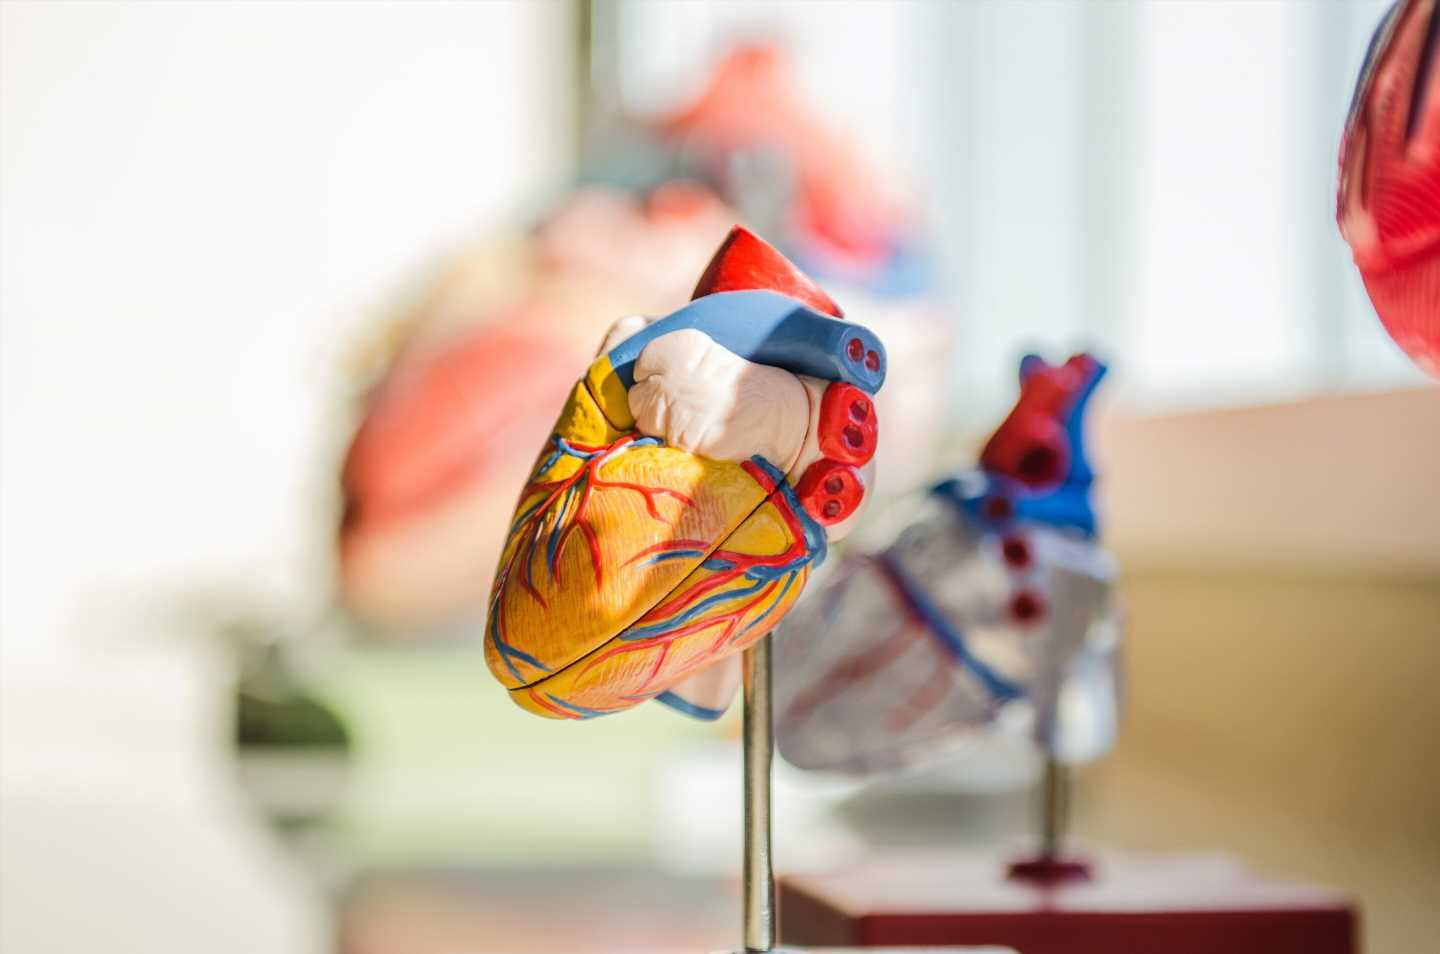 Nearly 1 in 5 patients who die from unexplained sudden cardiac death have suspicious gene